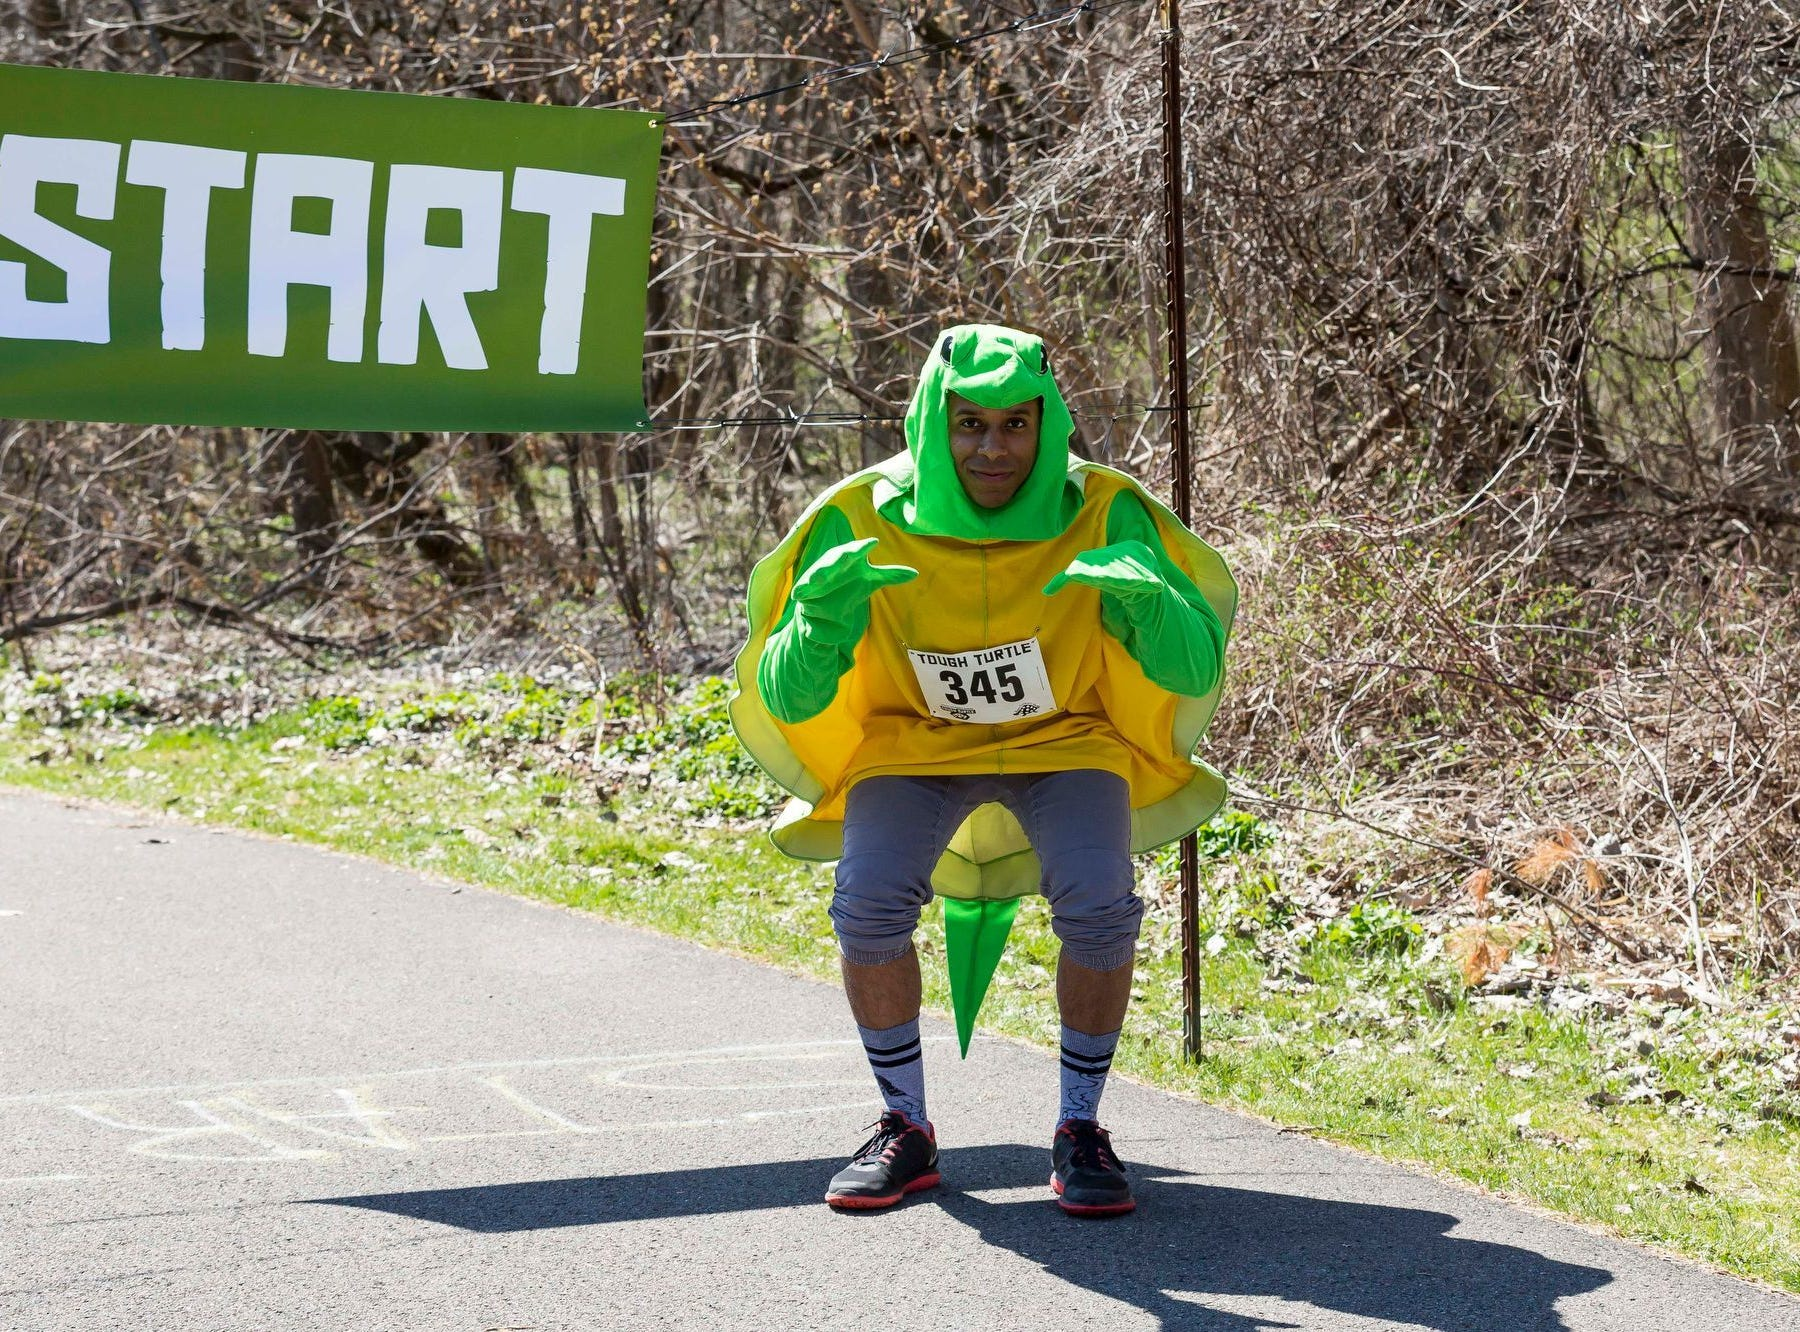 2016: A participant at the 2016 Tough Turtle 5K, a fundraiser for the Ithaca ChildrenÕs Garden.